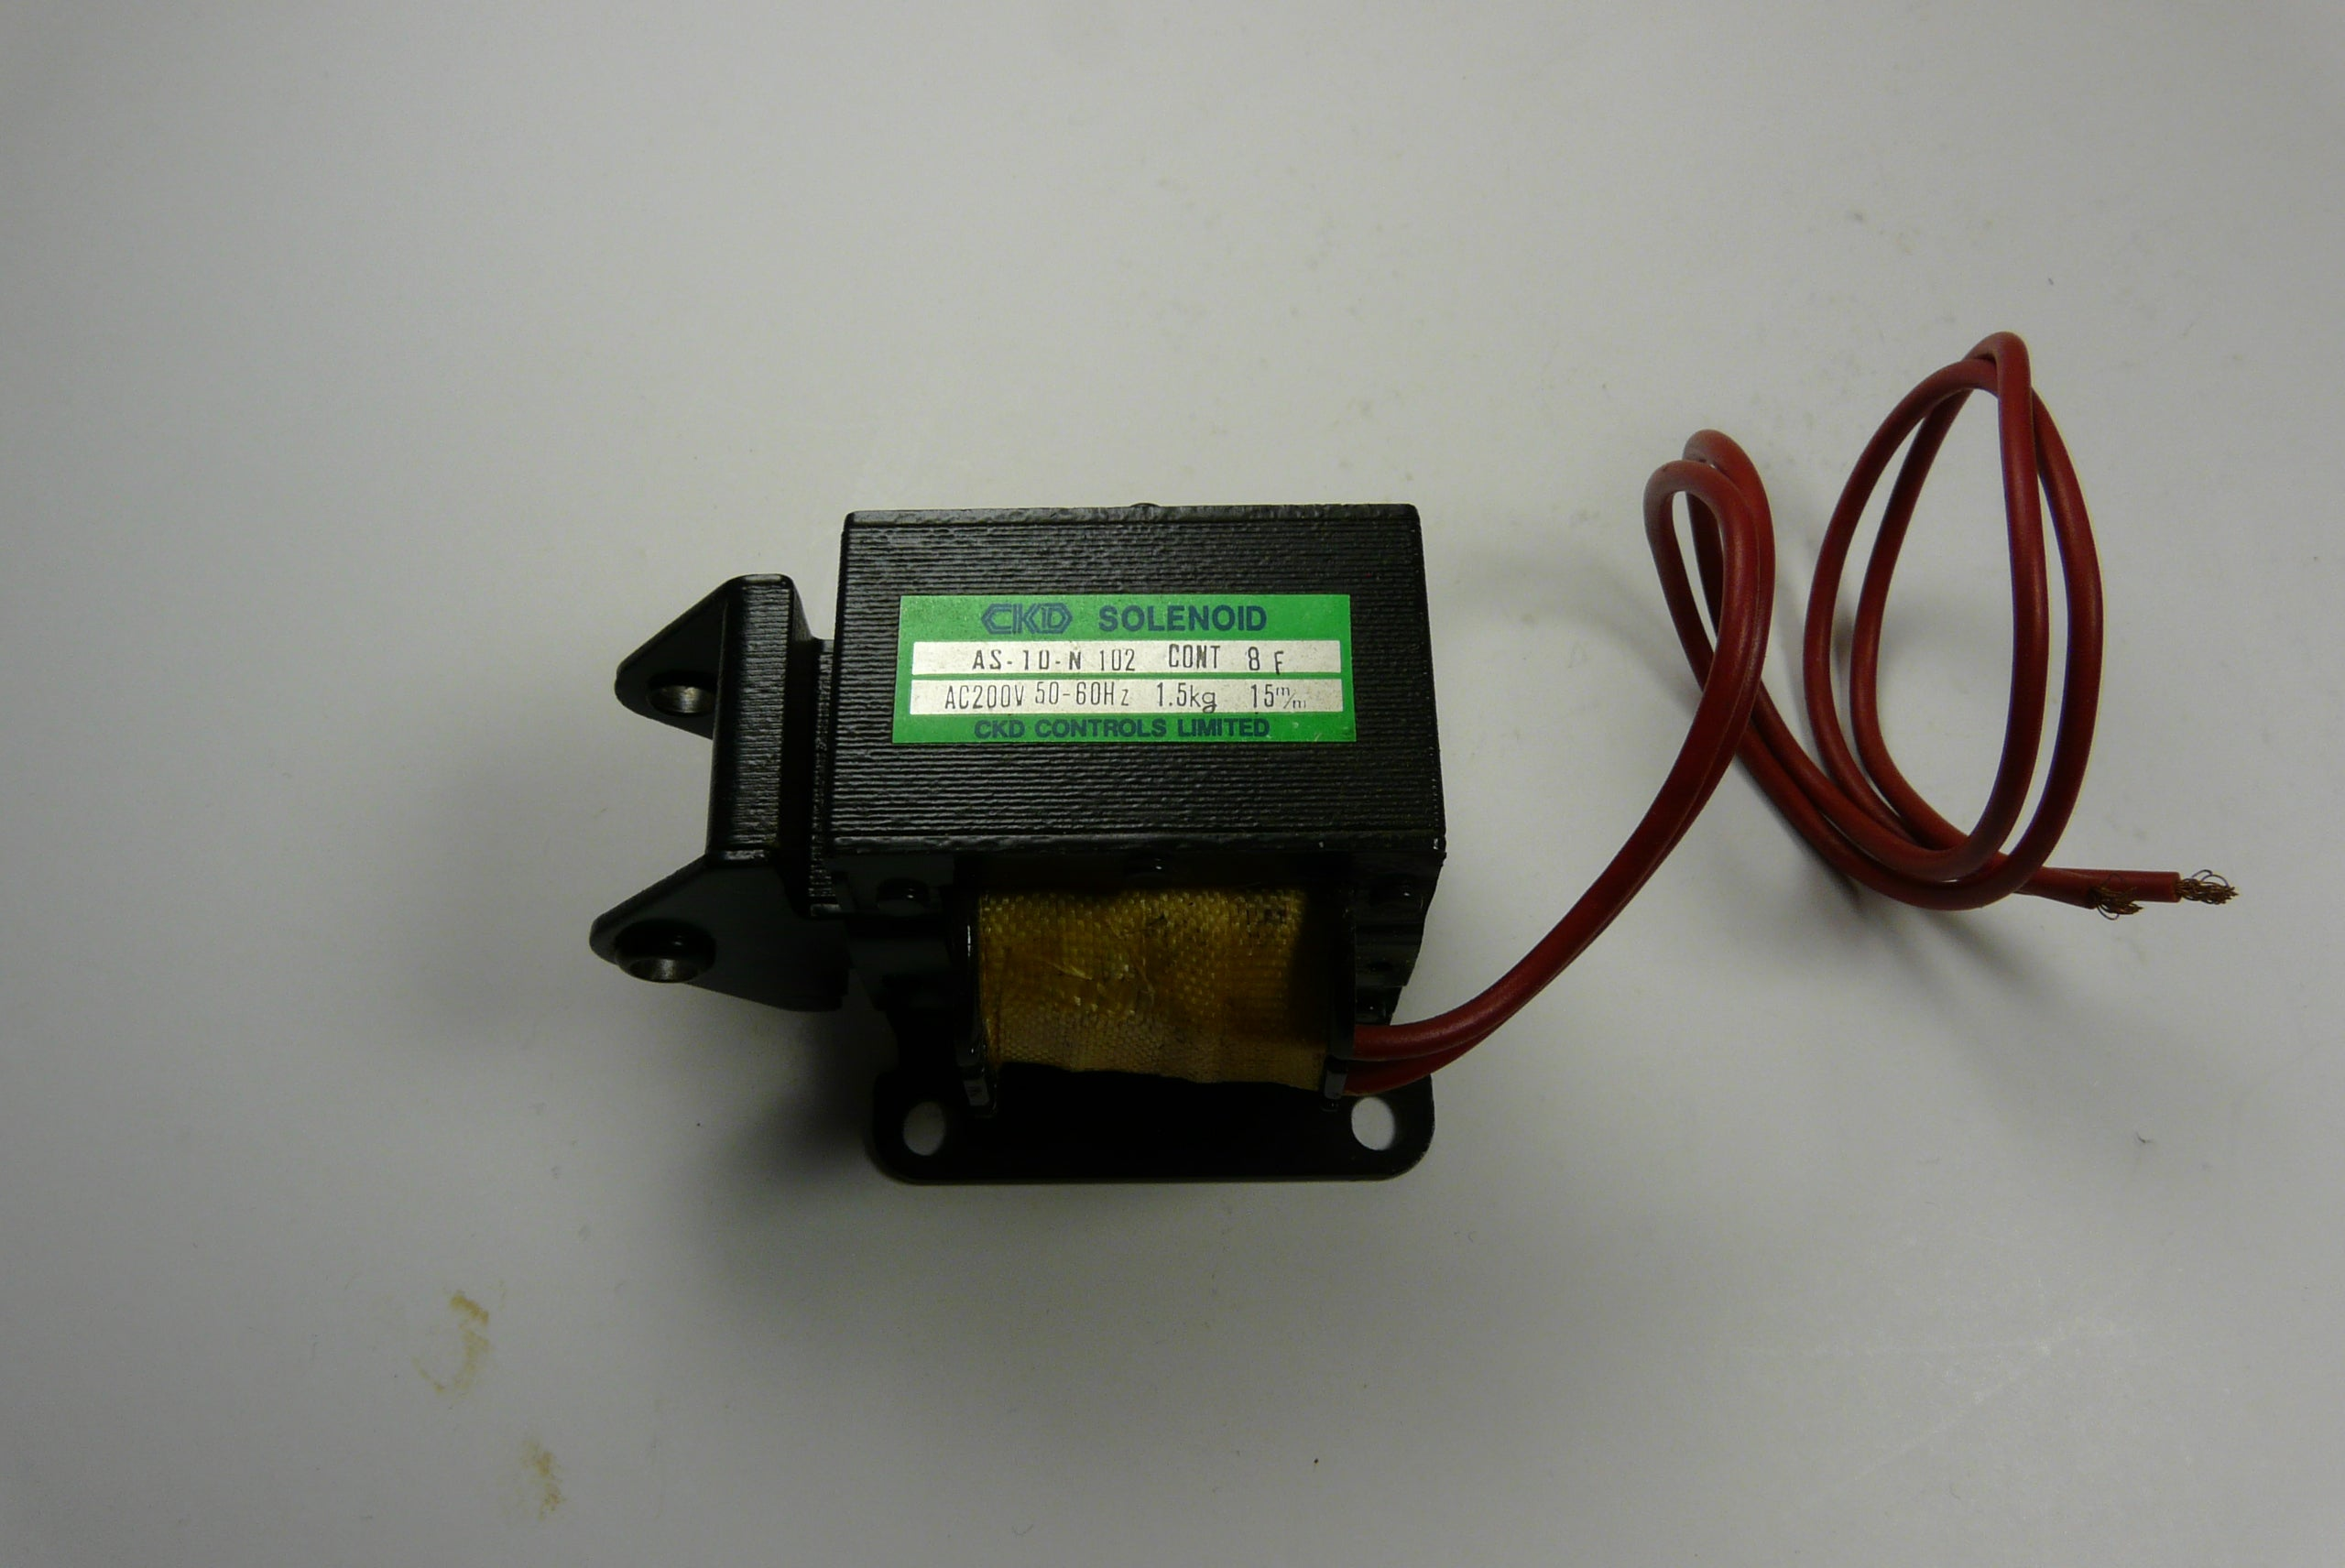 CKD 200V Solenoid Part# AS-10-N-102